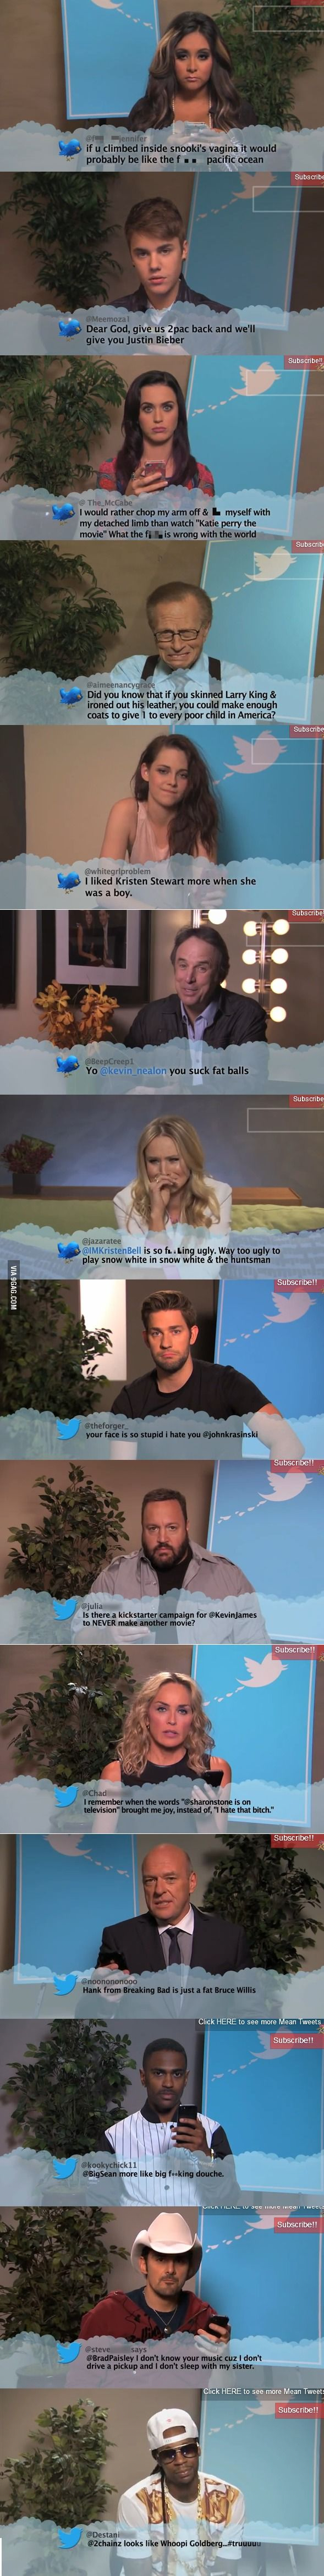 Jimmy Kimmel - Pinterest